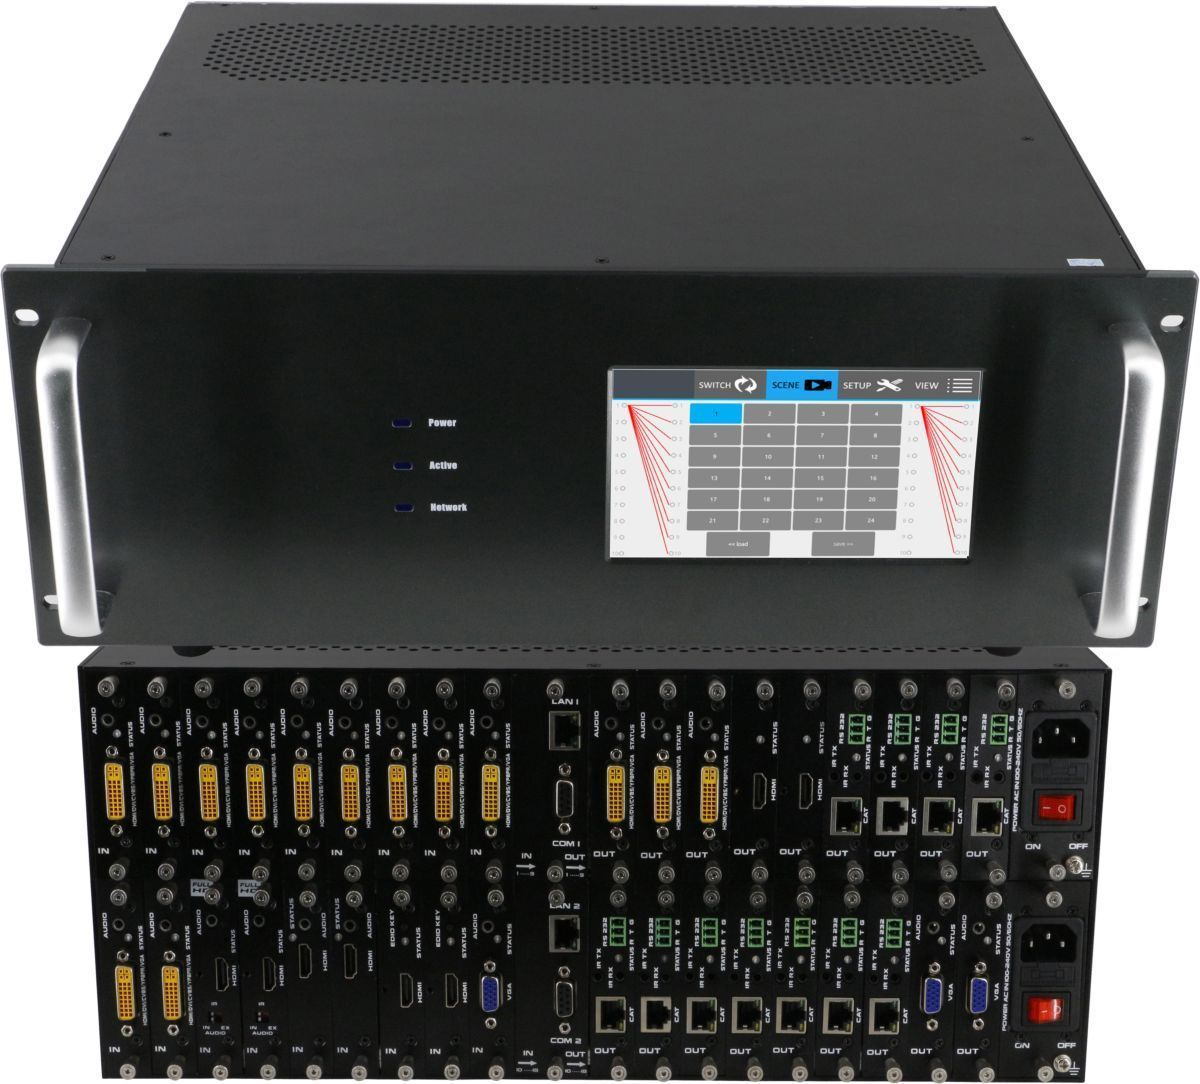 4K 14x9 HDMI Matrix Switcher with Color Touchscreen